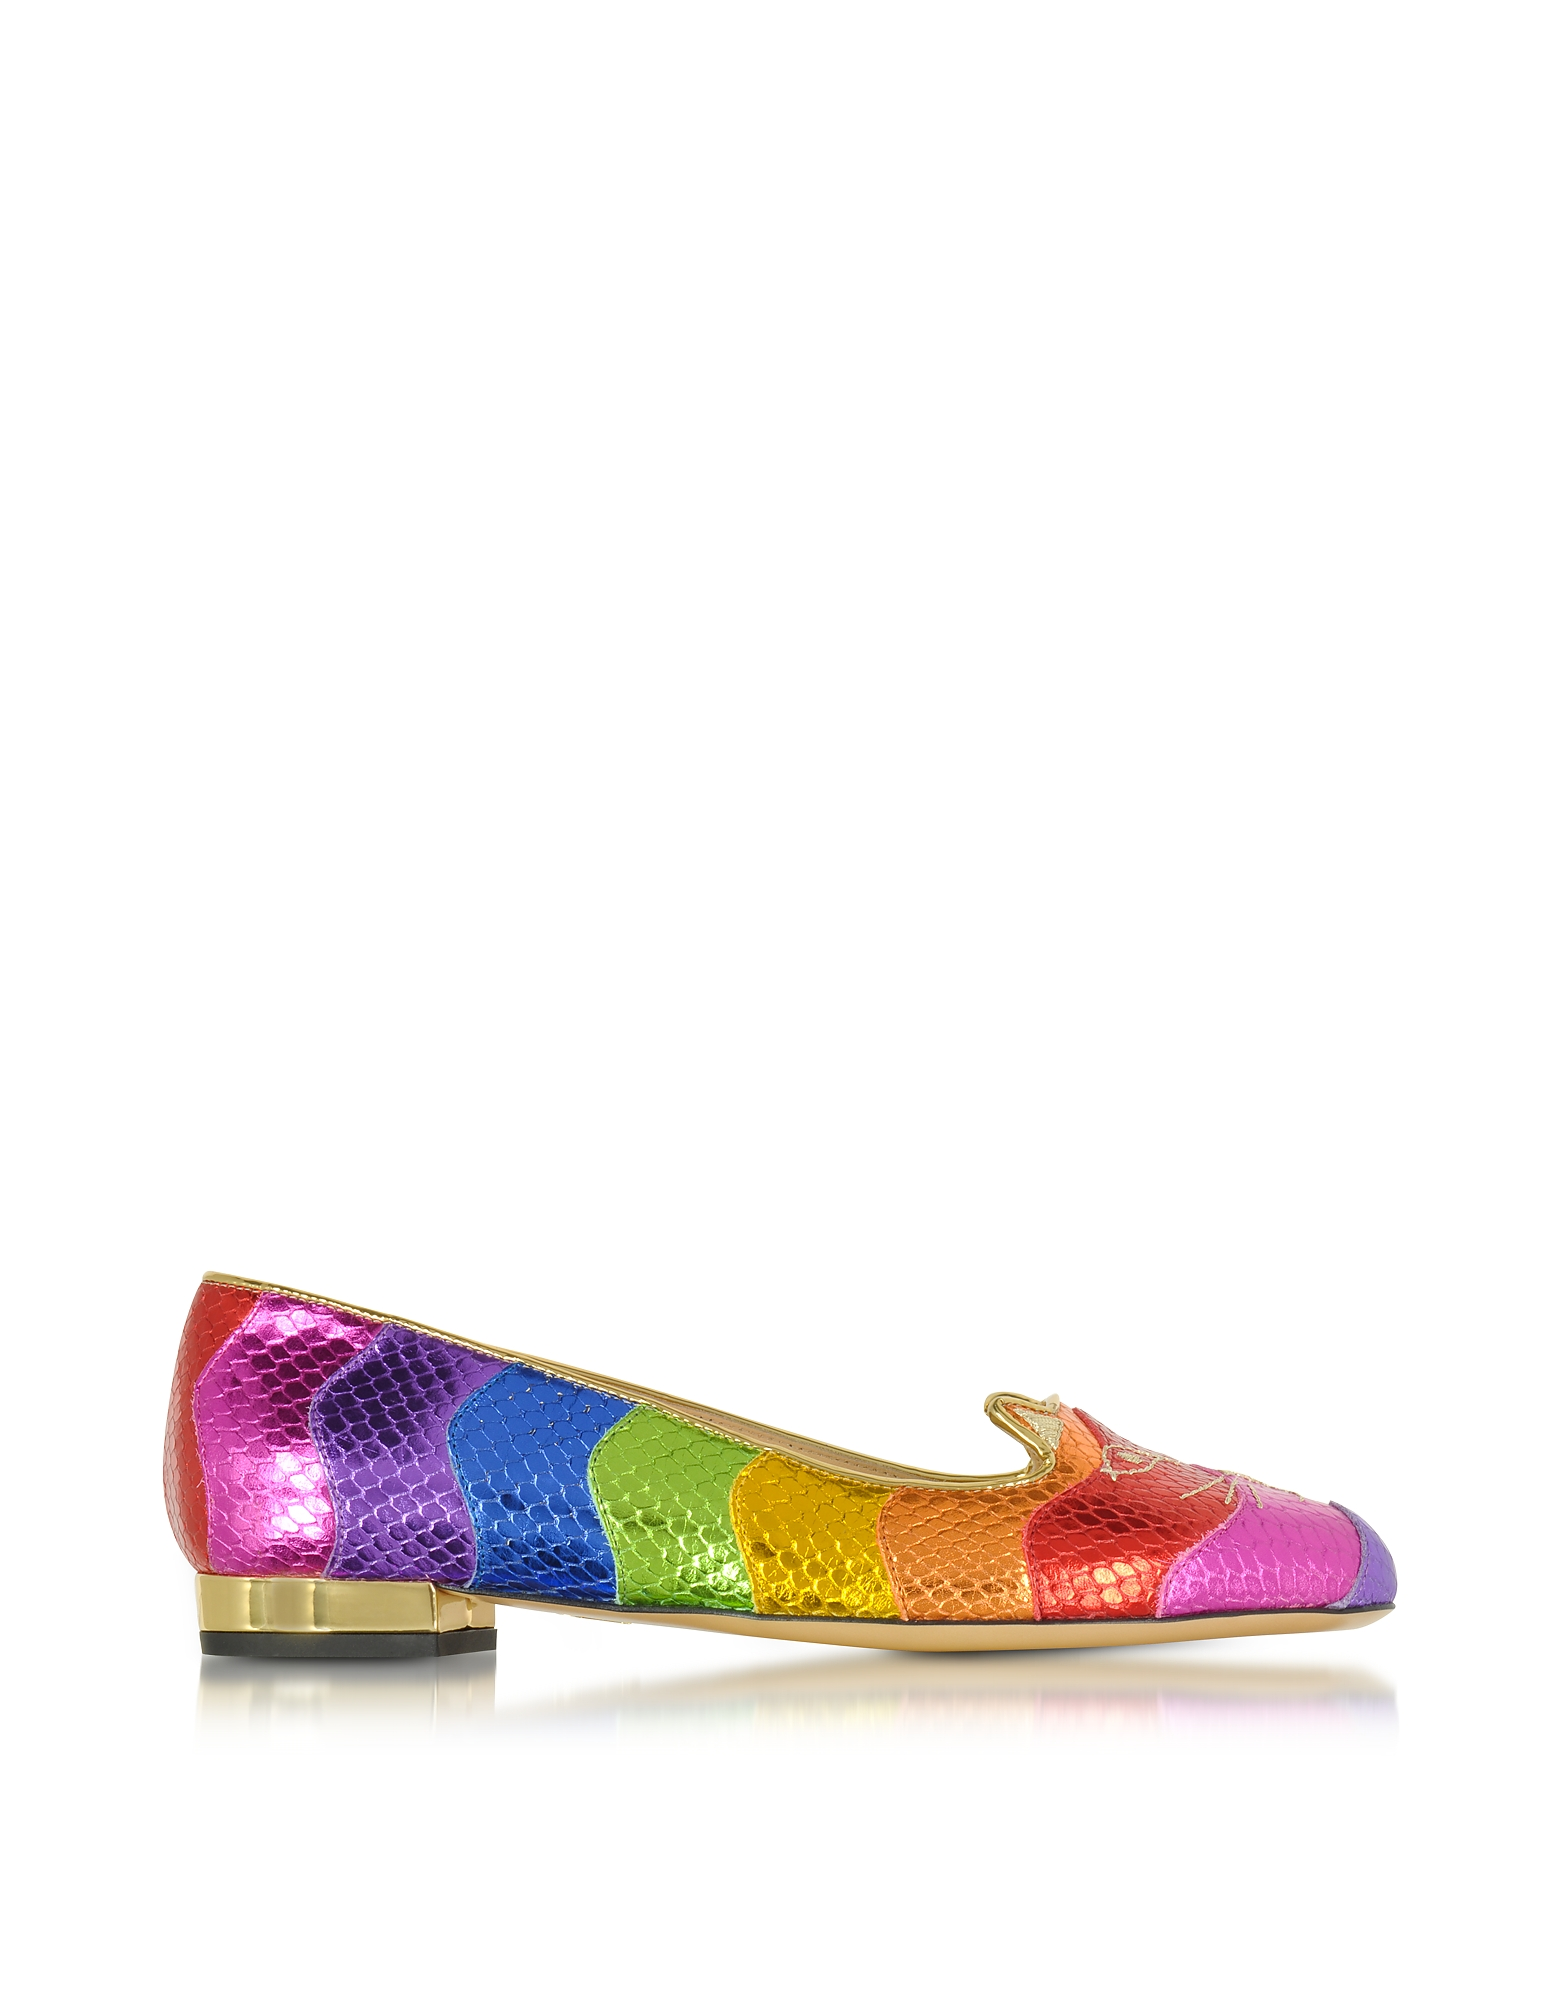 Charlotte Olympia Shoes, Snake Print Rainbow Kitty Flat Ballerinas